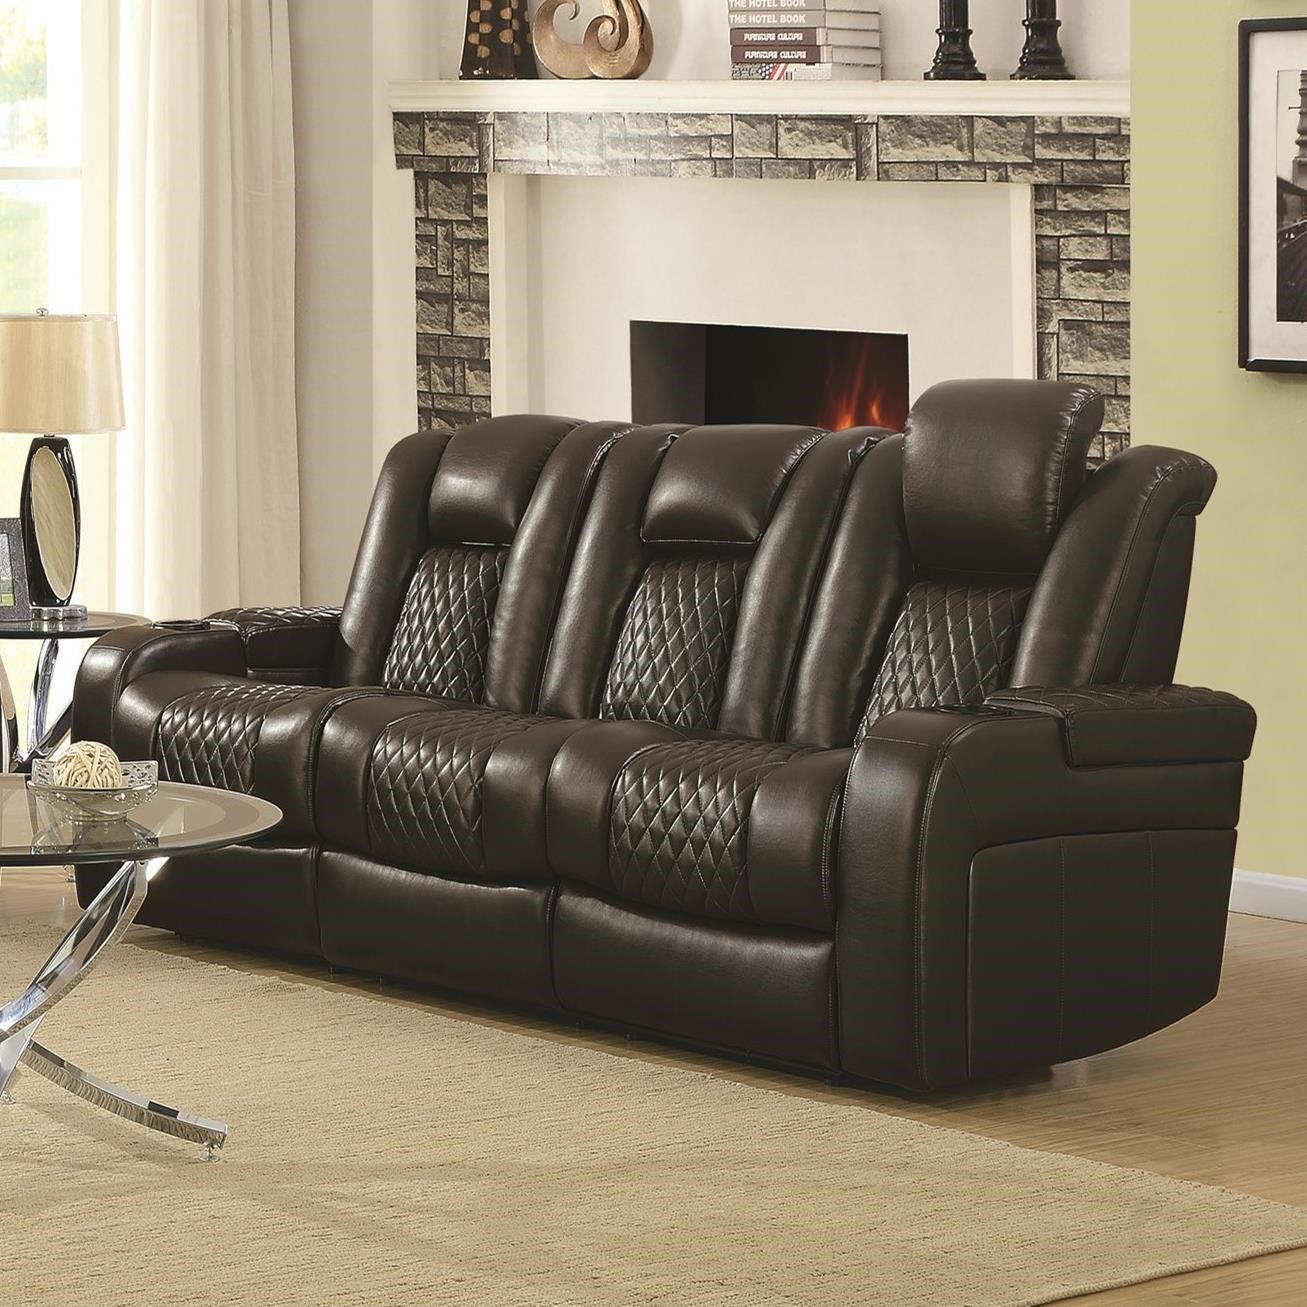 Delangelo Casual Power Reclining Sofa With Cup Holders